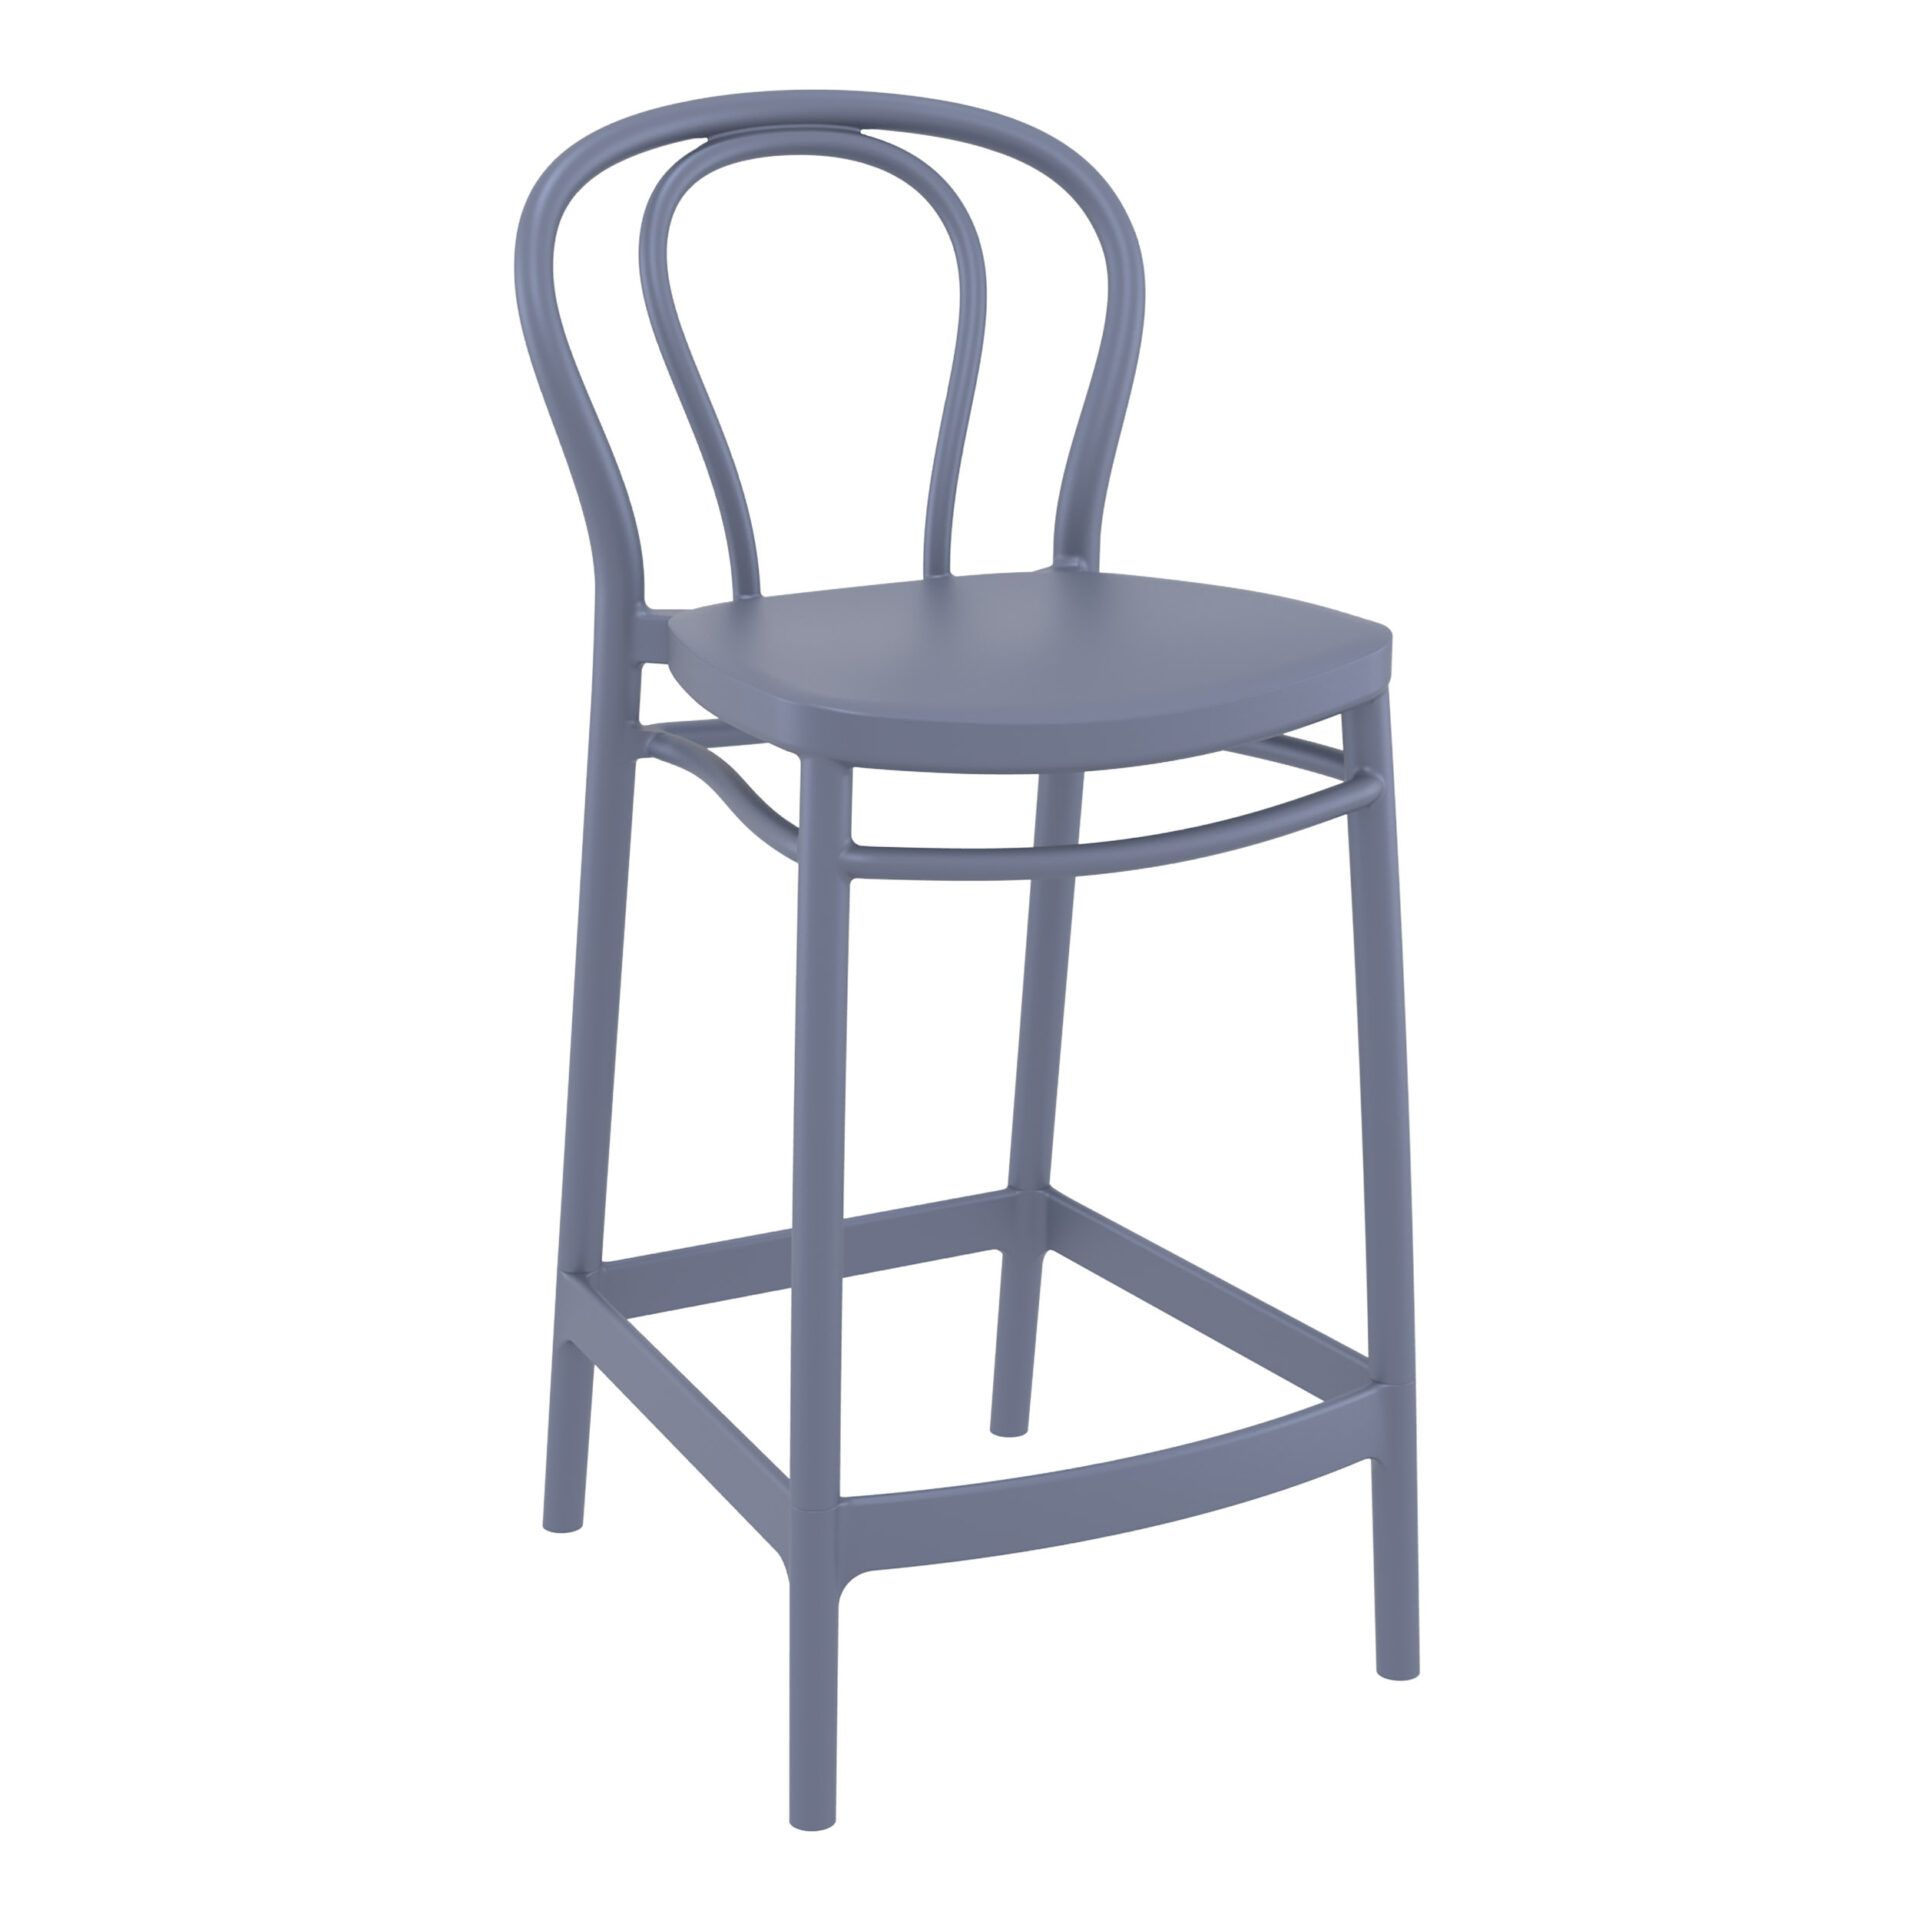 restaurant seating polypropylene victor barstool 65 darkgrey front side